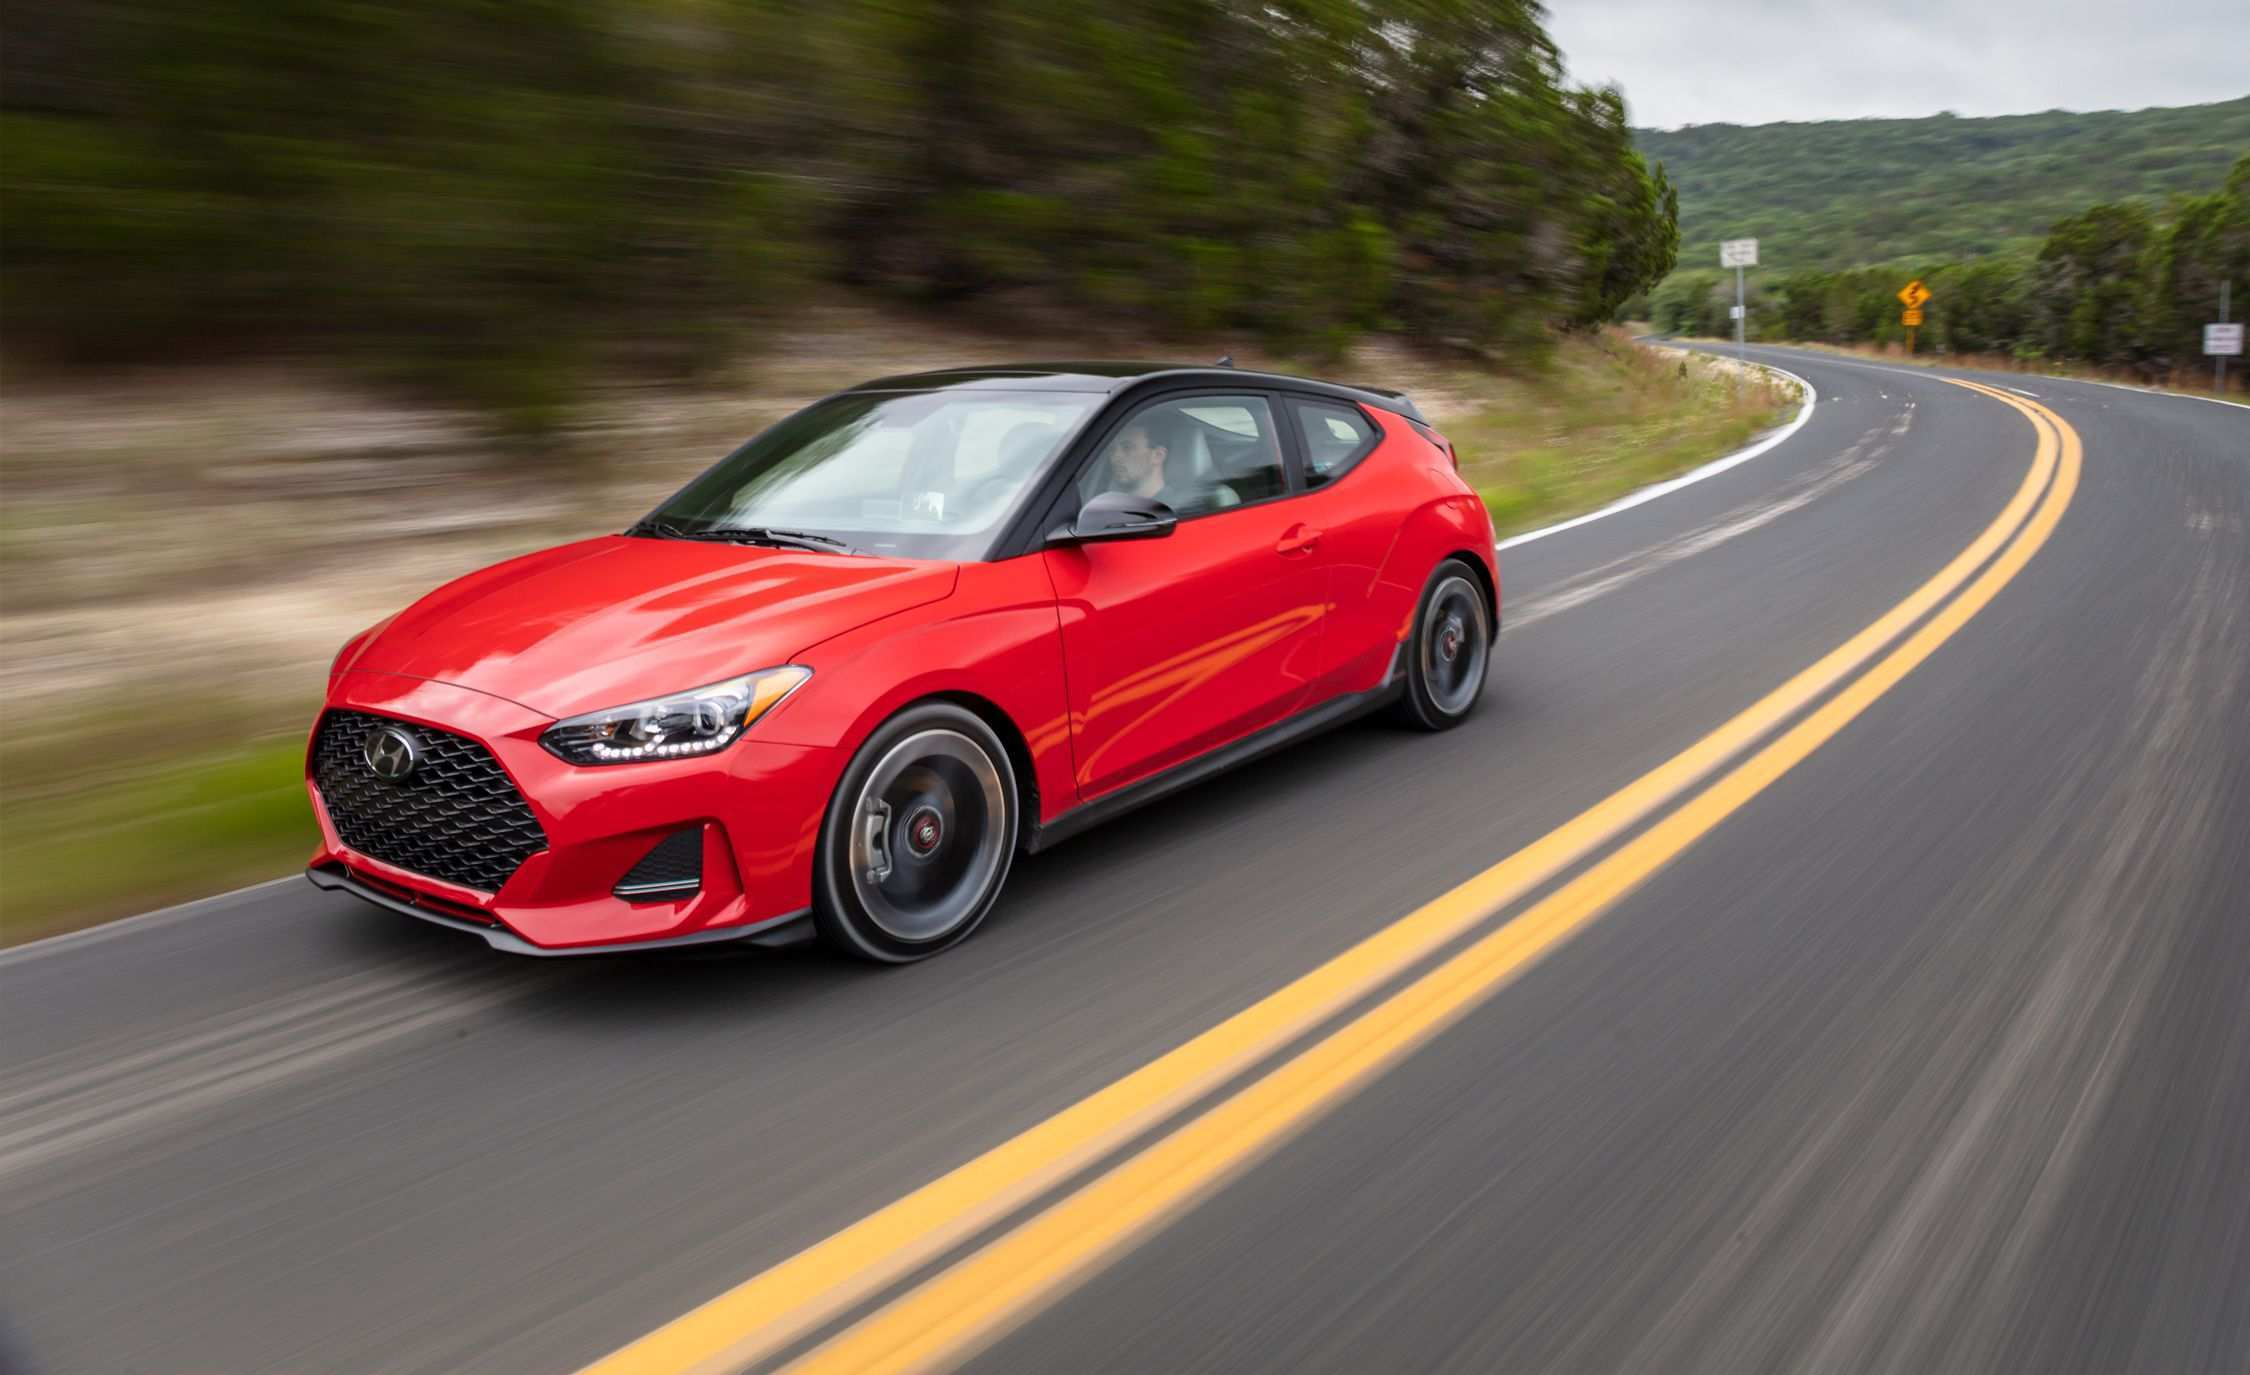 58 Gallery of 2019 Hyundai Veloster Review Specs and Review with 2019 Hyundai Veloster Review